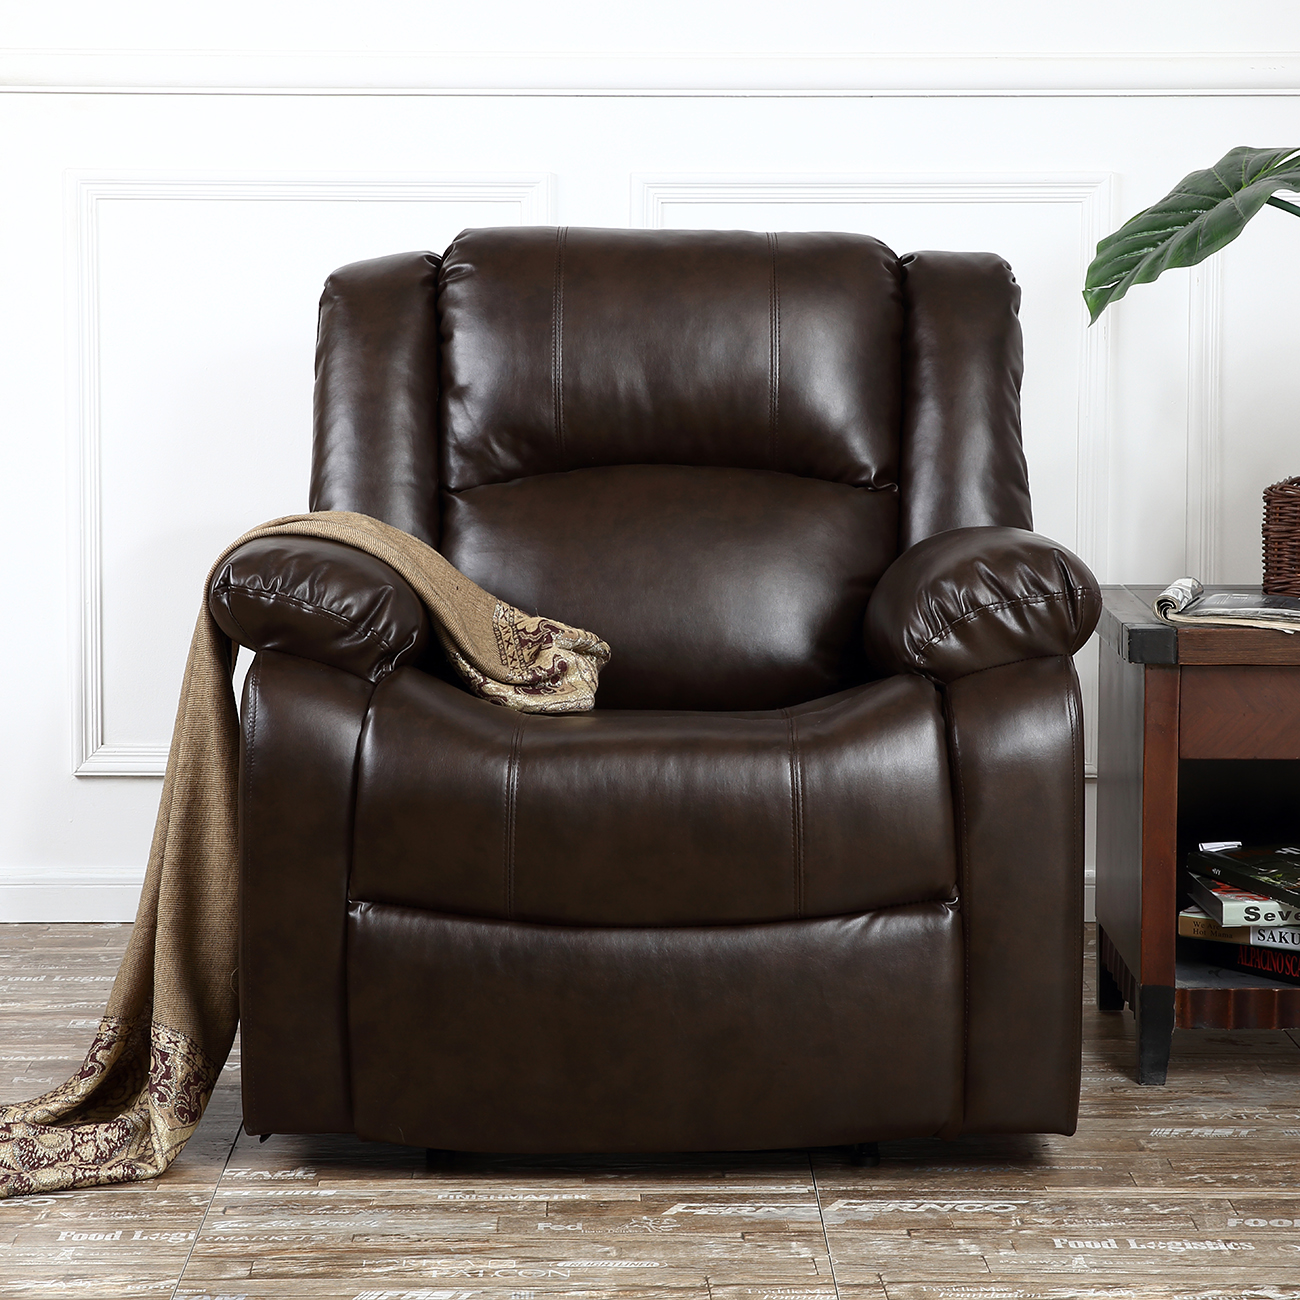 Recliner Chair Deluxe Club Large Overstuffed Cushion Faux Leather Padded Brown & Recliner Chair Deluxe Club Large Overstuffed Cushion Faux Leather ... islam-shia.org